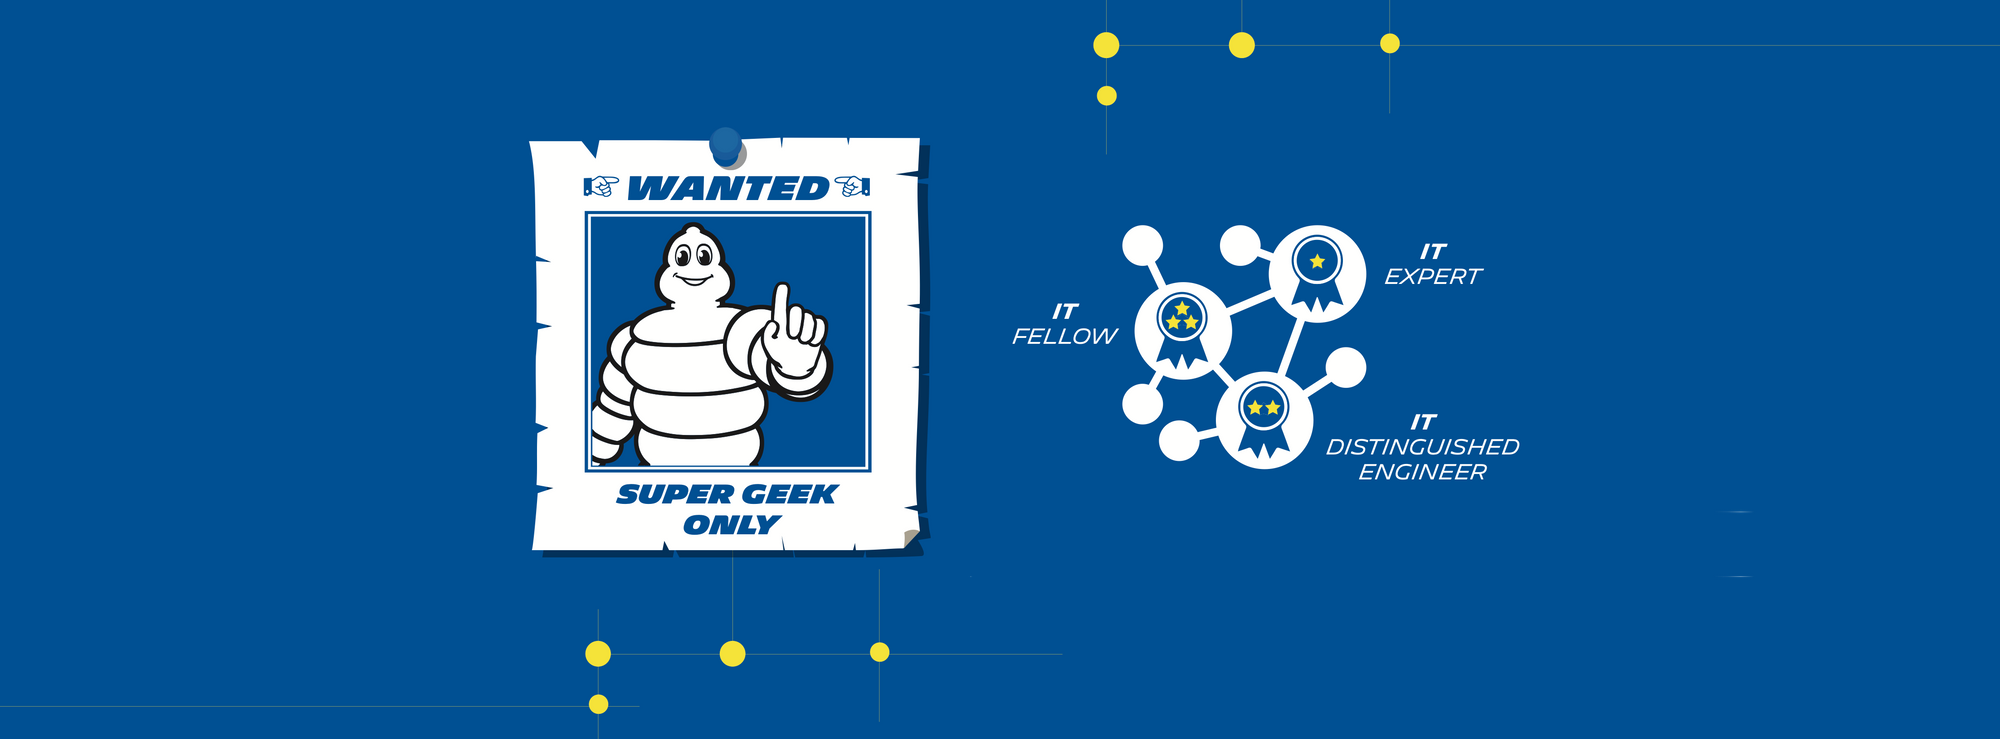 Wanted super geek only (IT FELLOW, IT DISTINGUISHED ENGINEER, IT EXPERT)